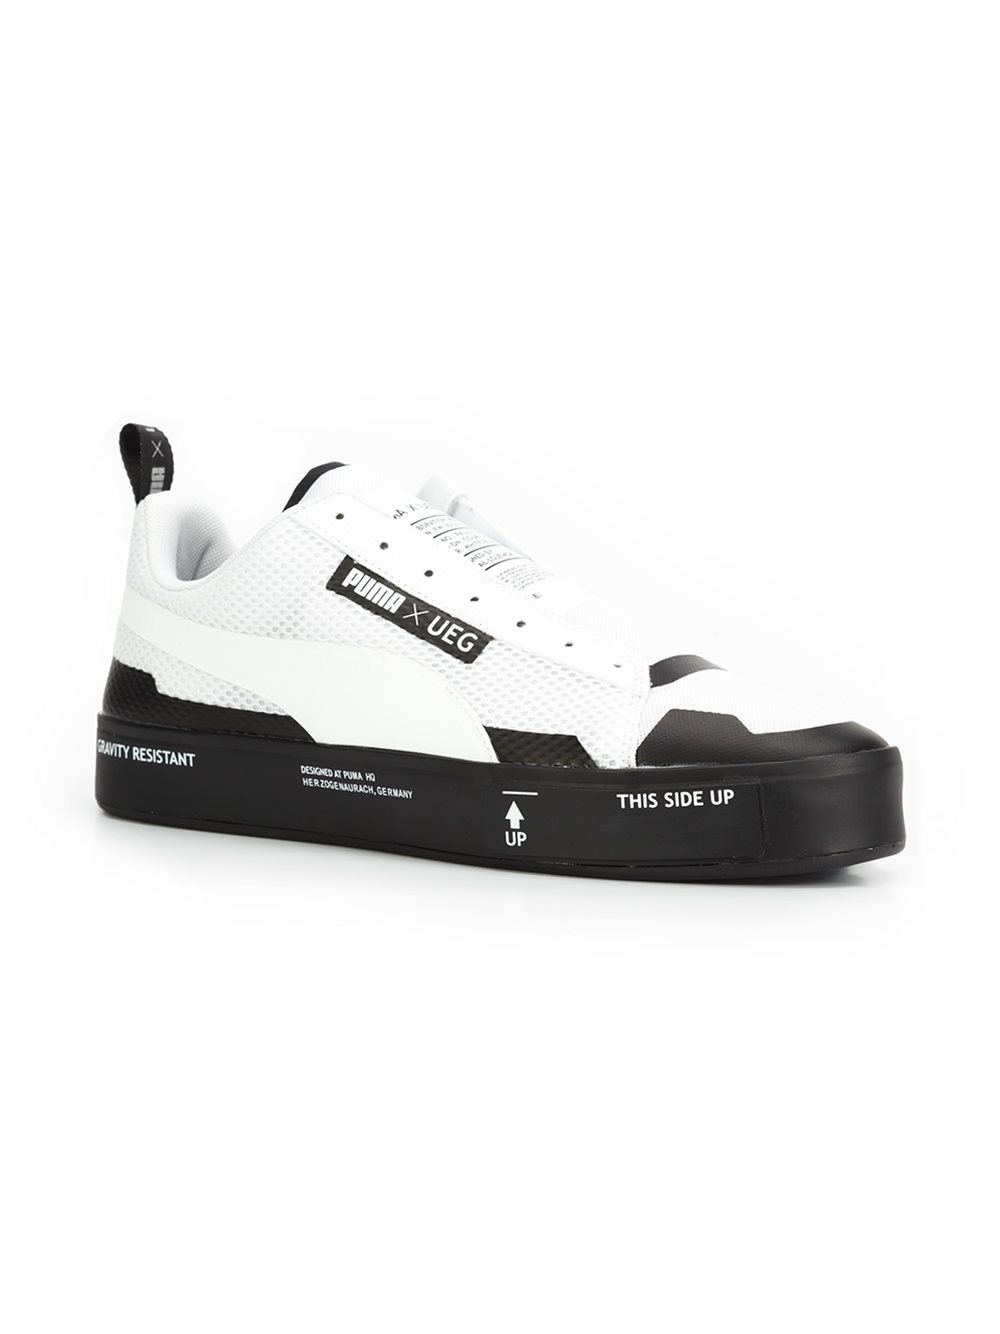 1c8104ce4fd3 Lyst - PUMA  ueg X Court Play  Laceless Sneakers in White for Men